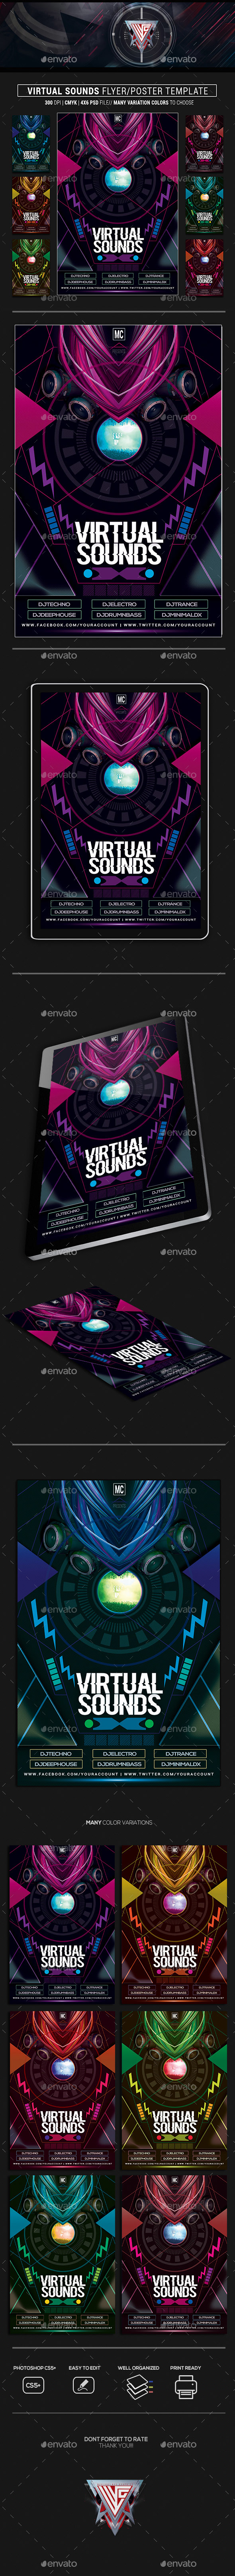 Virtual Sounds Photoshop Flyer/Poster Template - Events Flyers